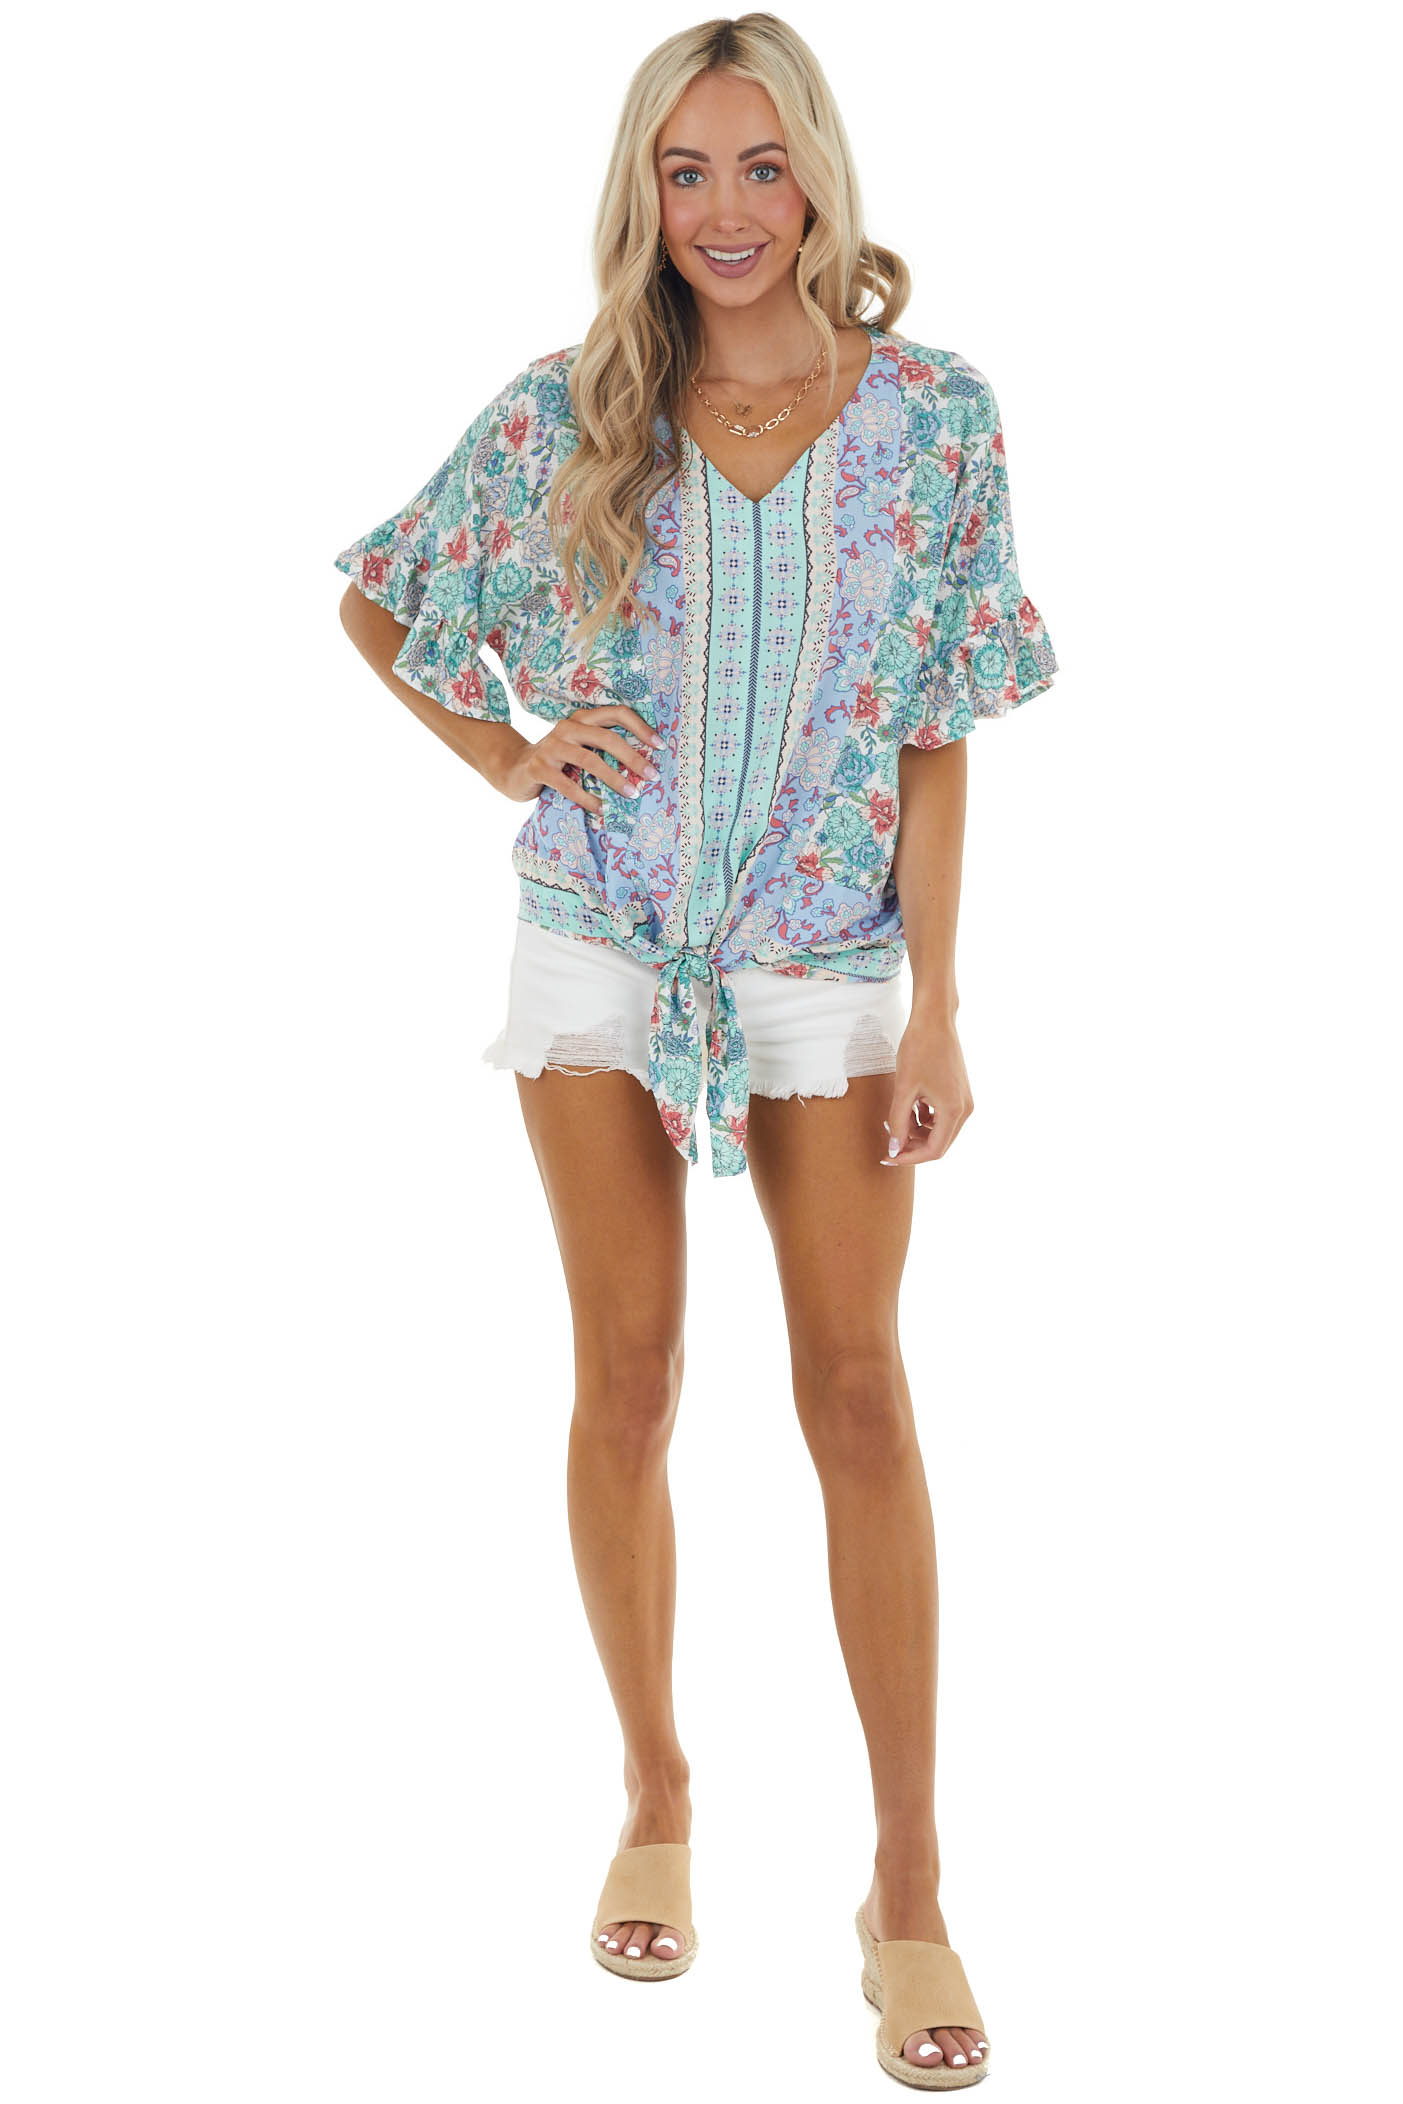 Turquoise and Sky Blue Floral Print Woven Top with Front Tie